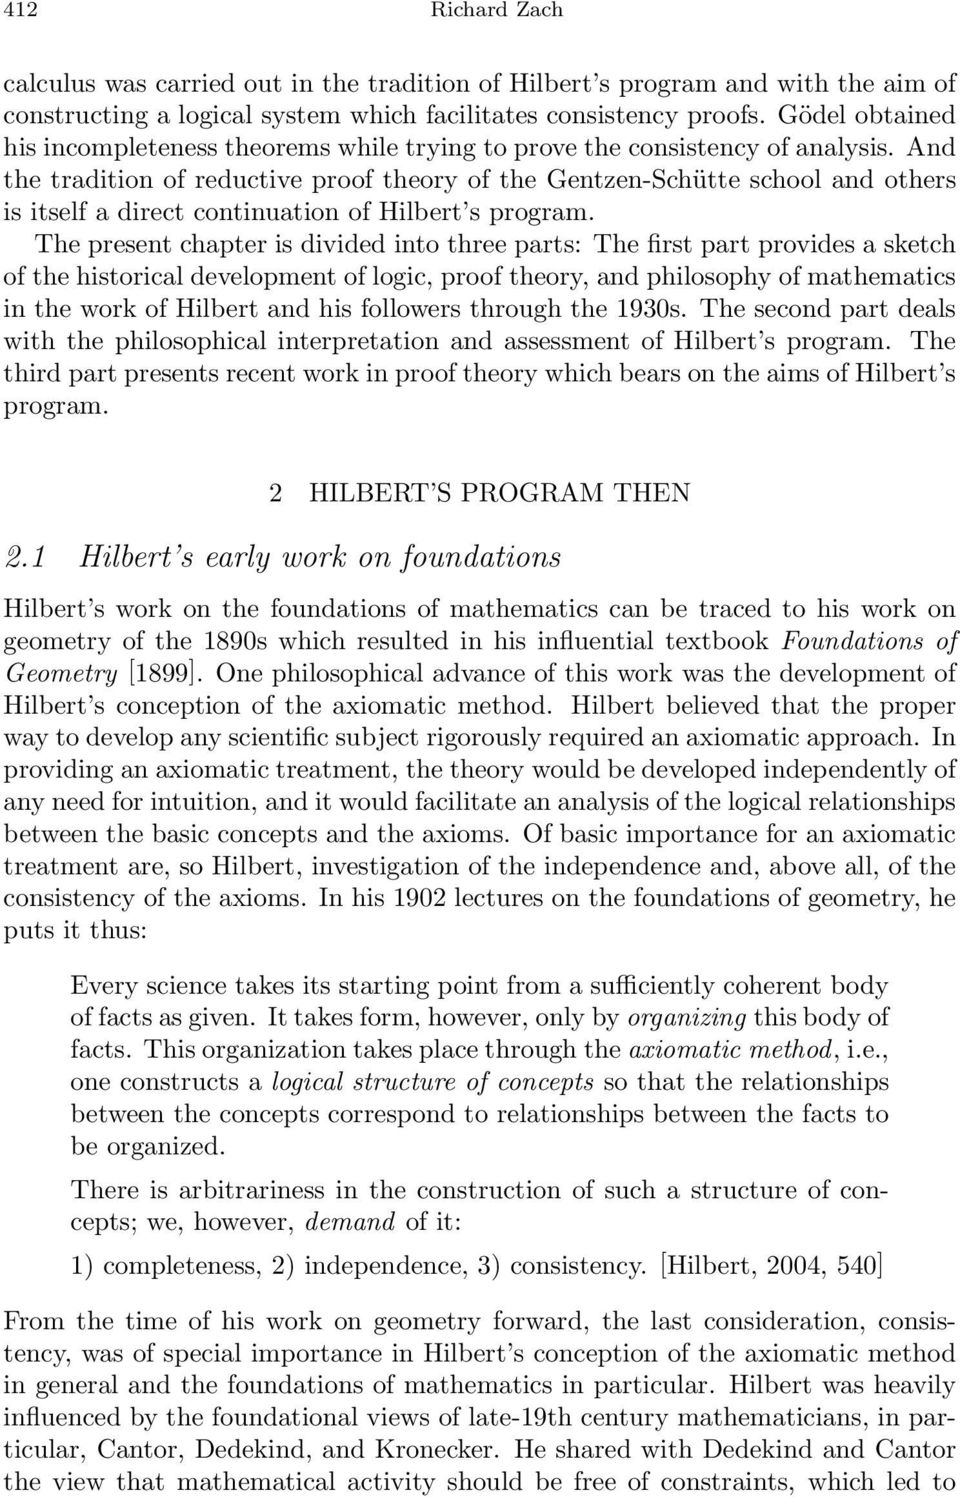 And the tradition of reductive proof theory of the Gentzen-Schütte school and others is itself a direct continuation of Hilbert s program.